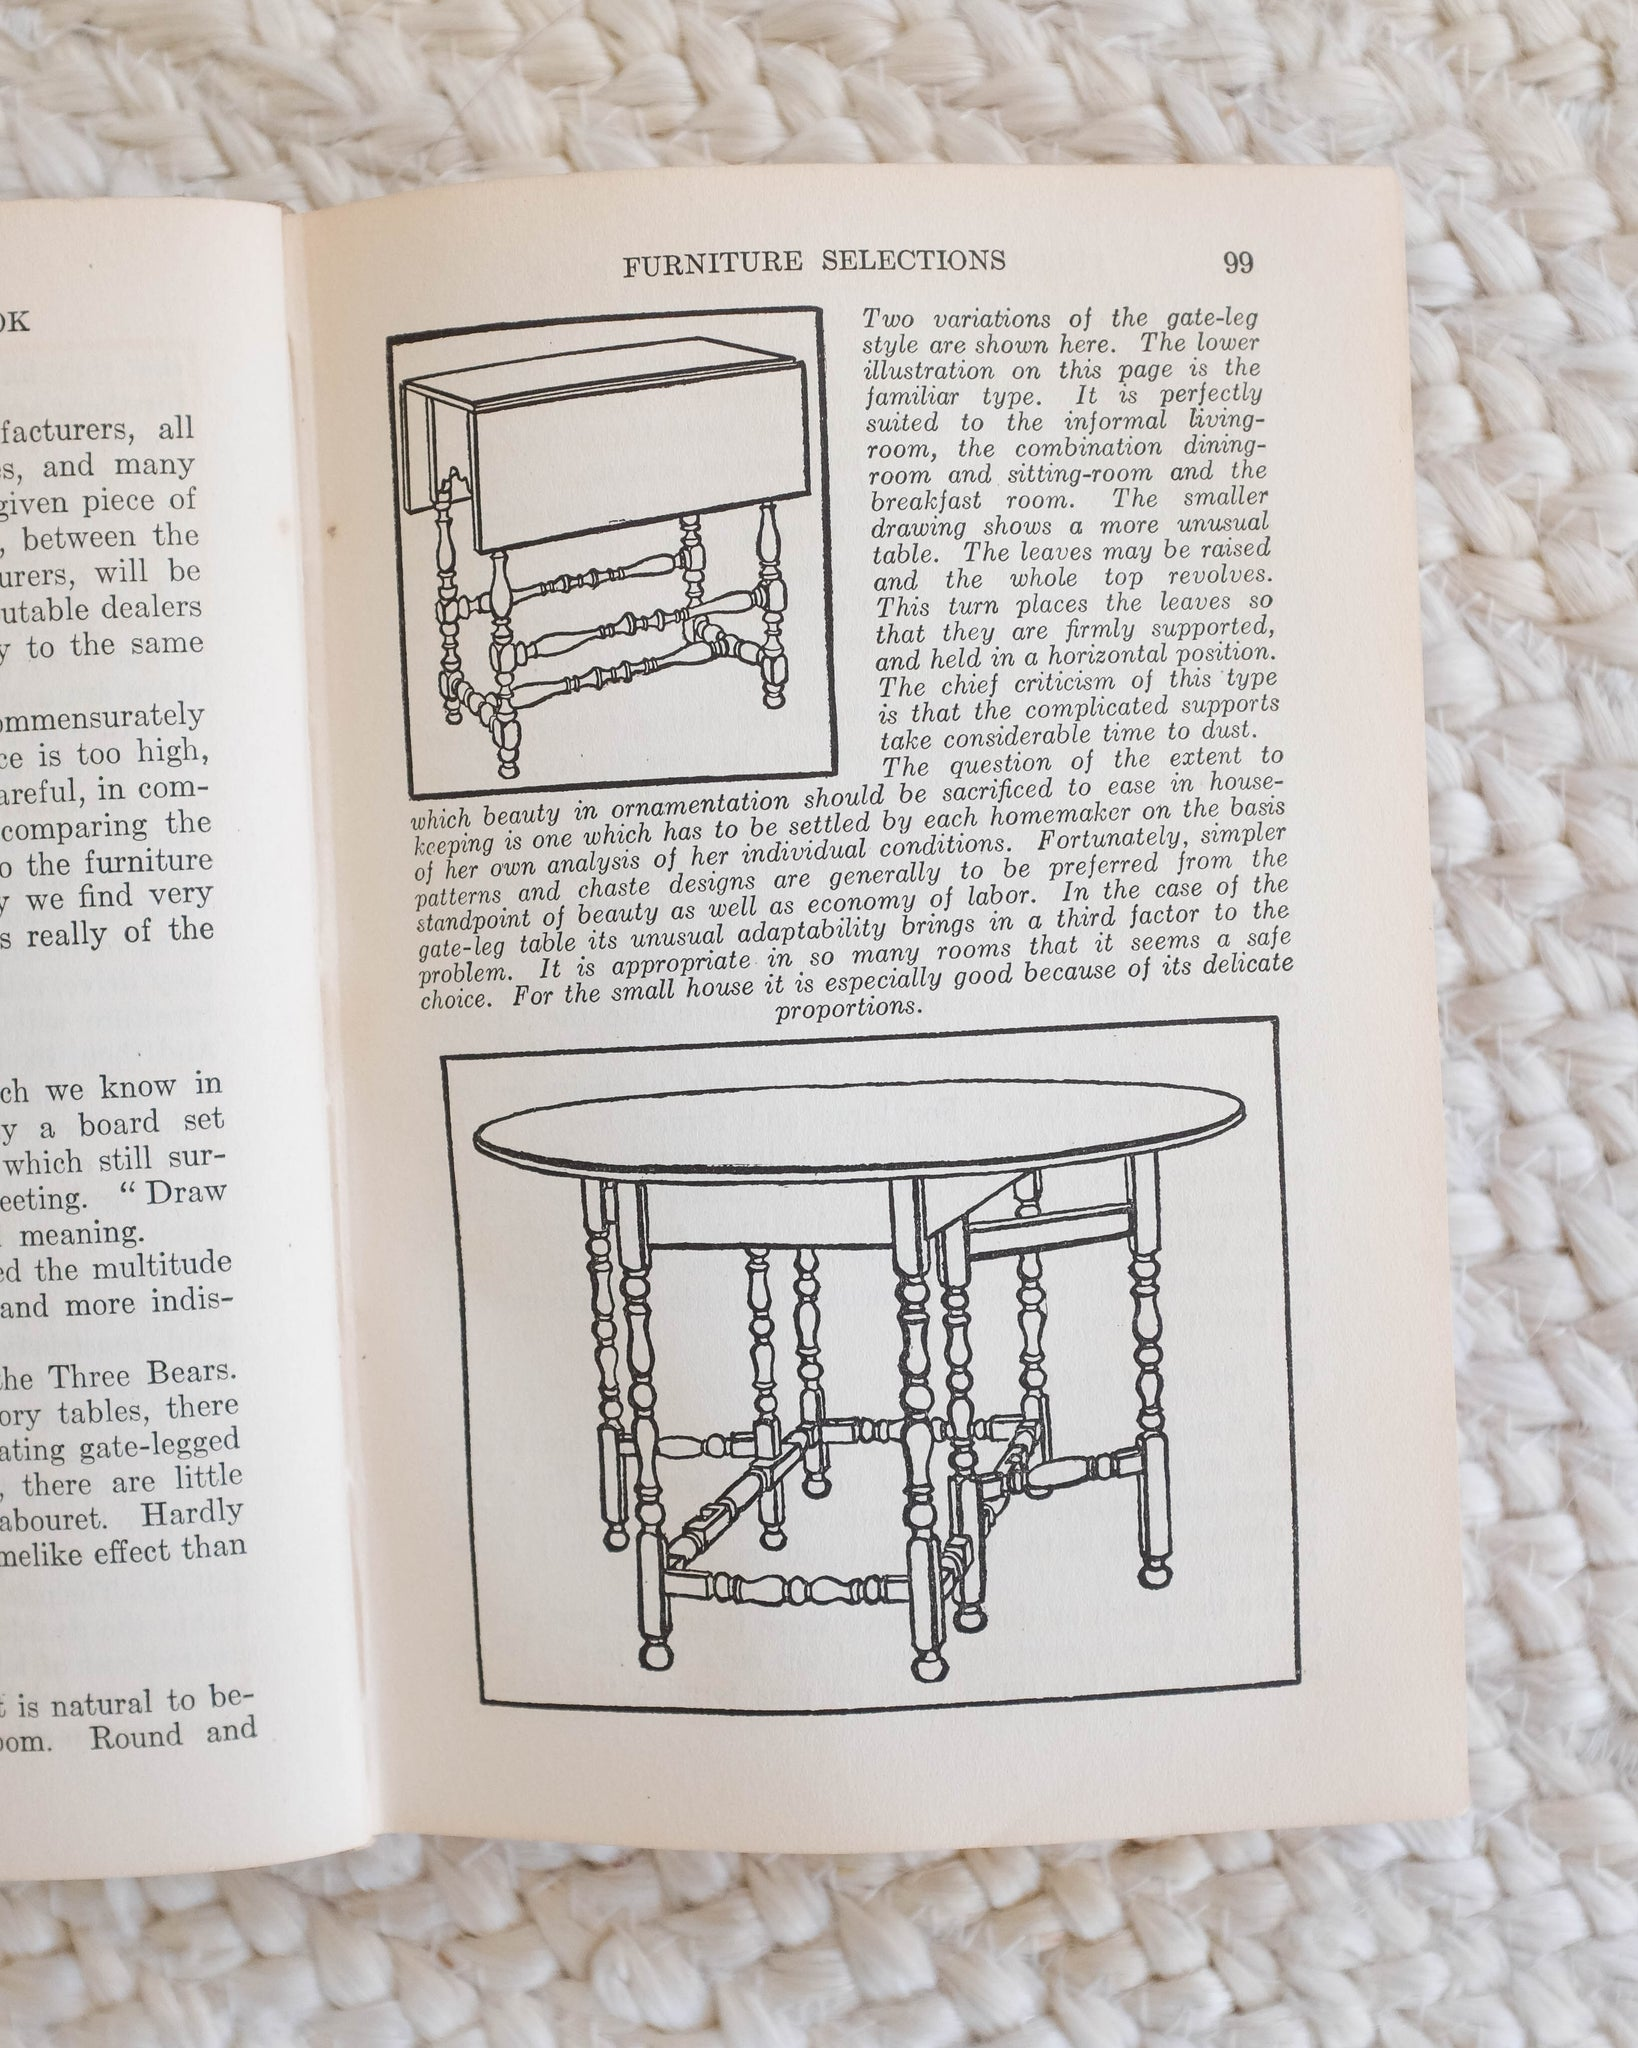 1920s Interior Design Guide Book